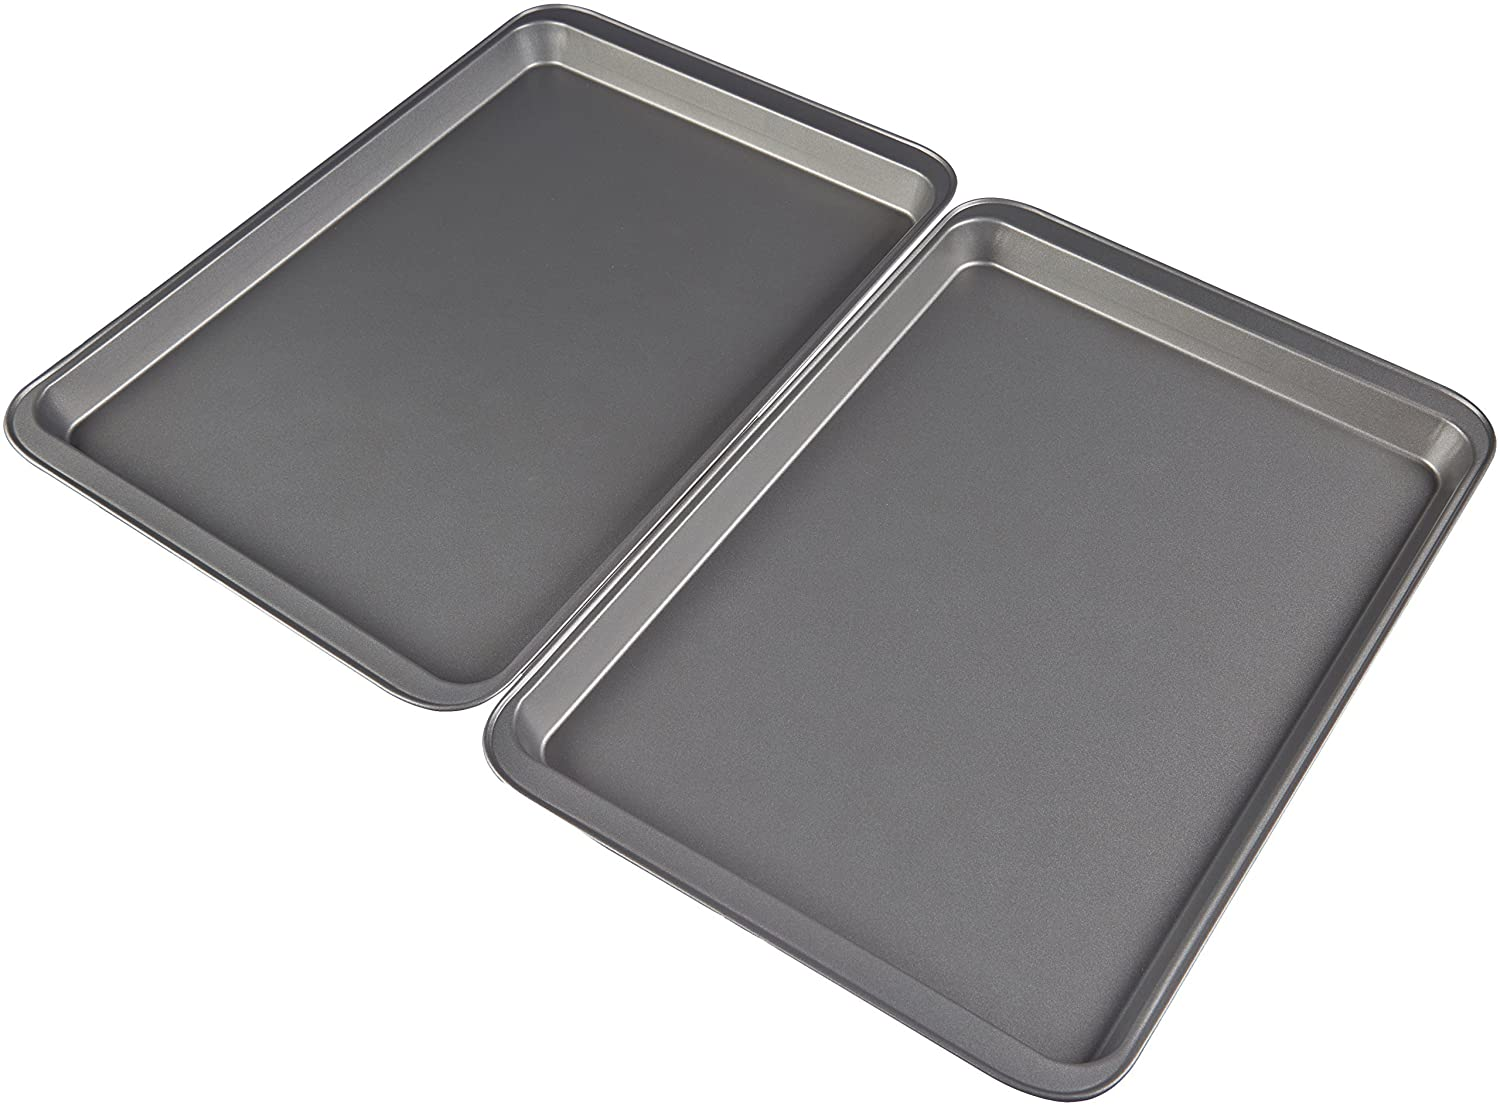 AmazonBasics Nonstick Carbon Steel Half Baking Sheet - 2-Pack 78202